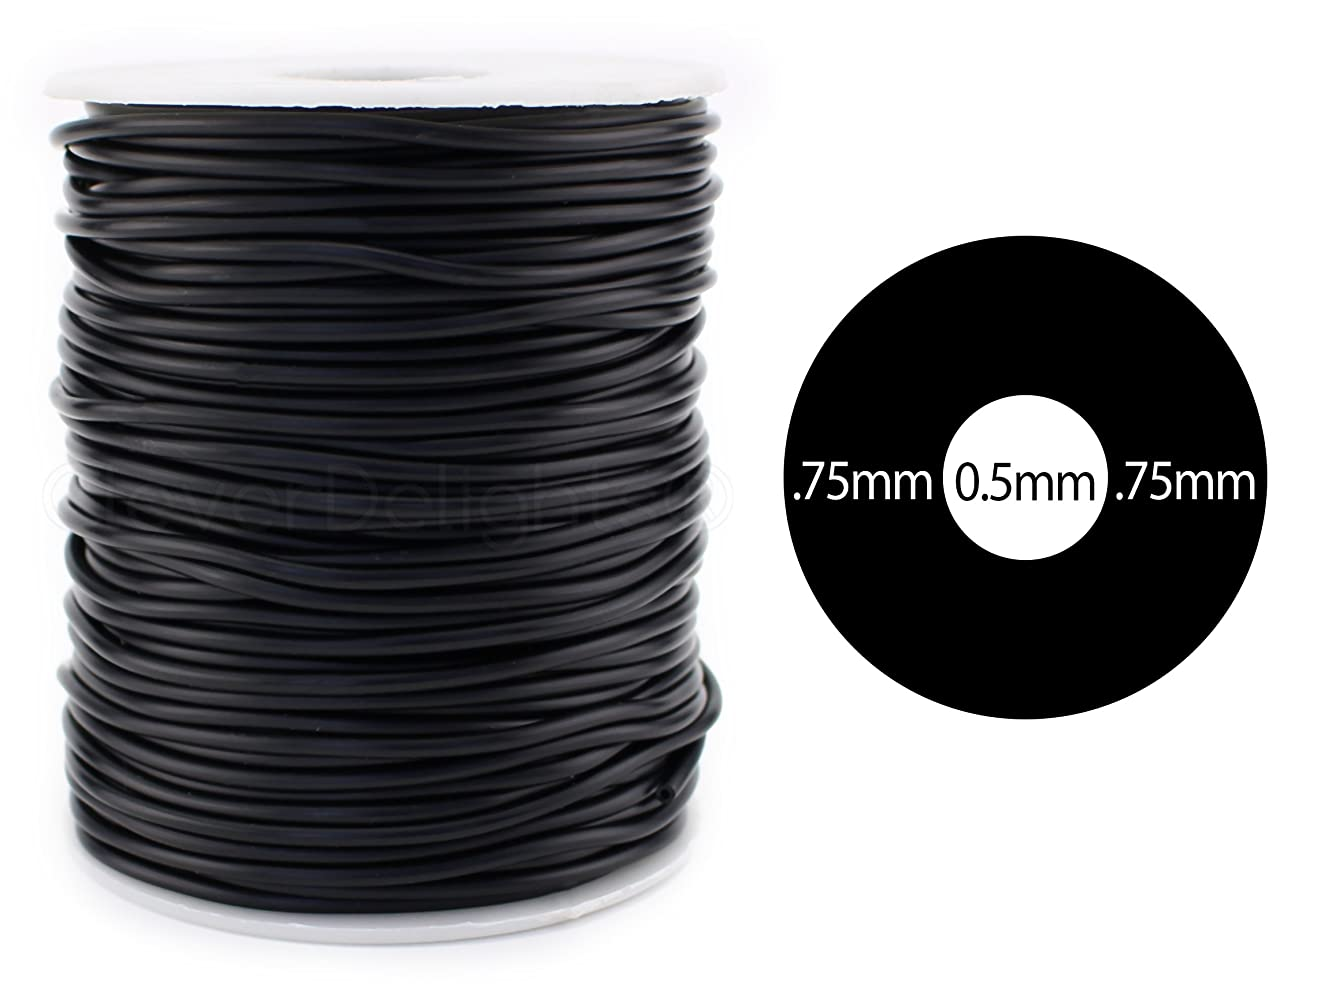 CleverDelights Black Hollow Rubber Tubing - 30 Feet - 2mm Diameter Tube Cord - 1/16